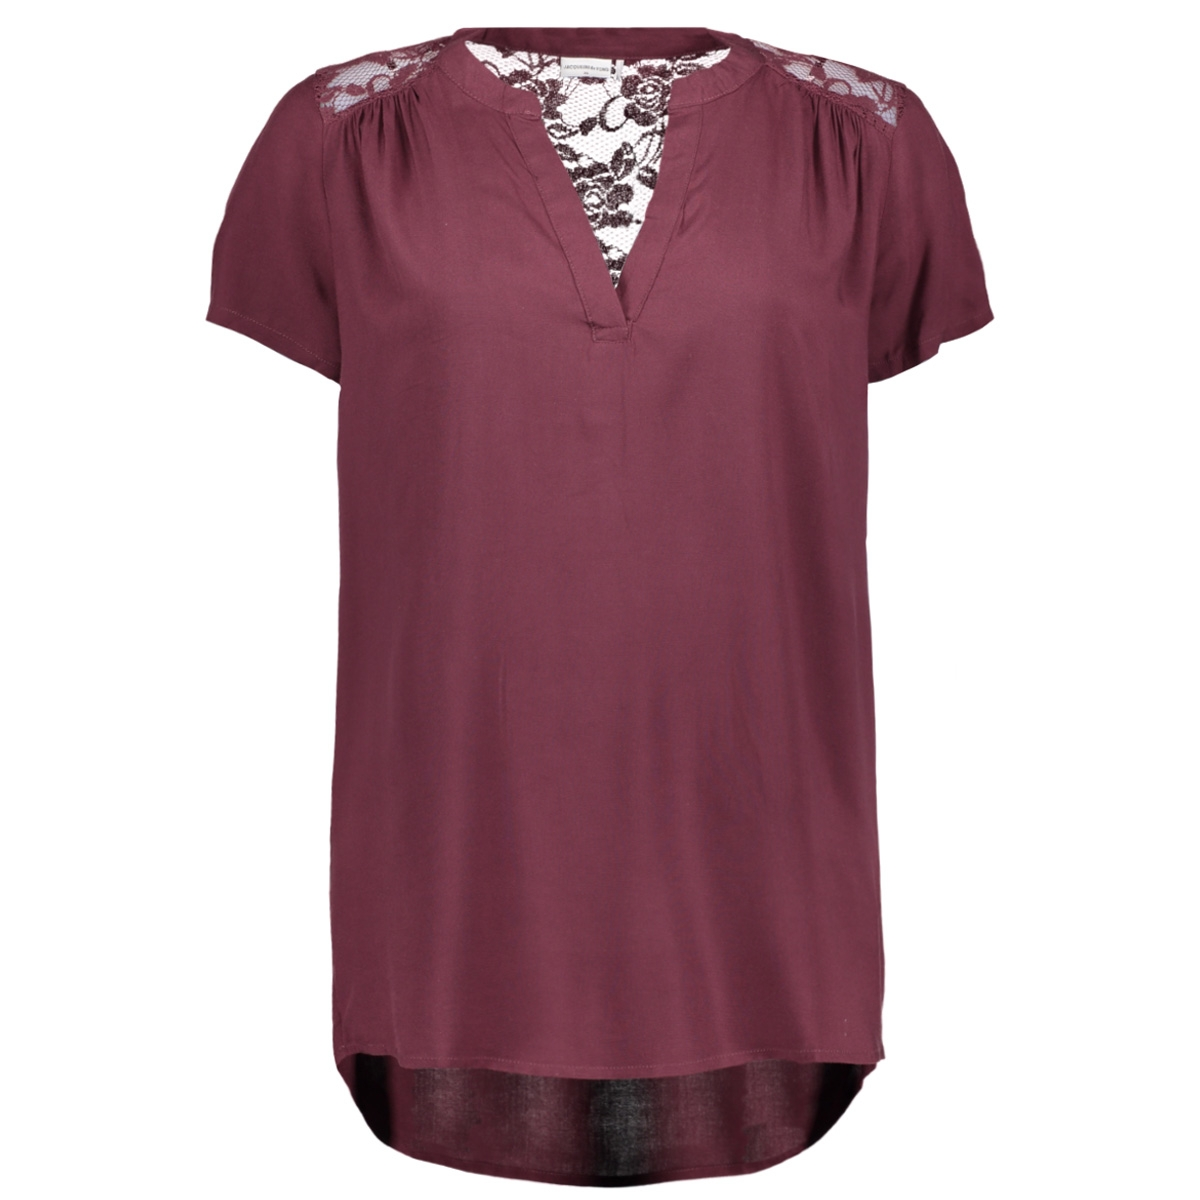 jdyliva s/s loose top wvn 15135335 jacqueline de yong blouse vineyard wine